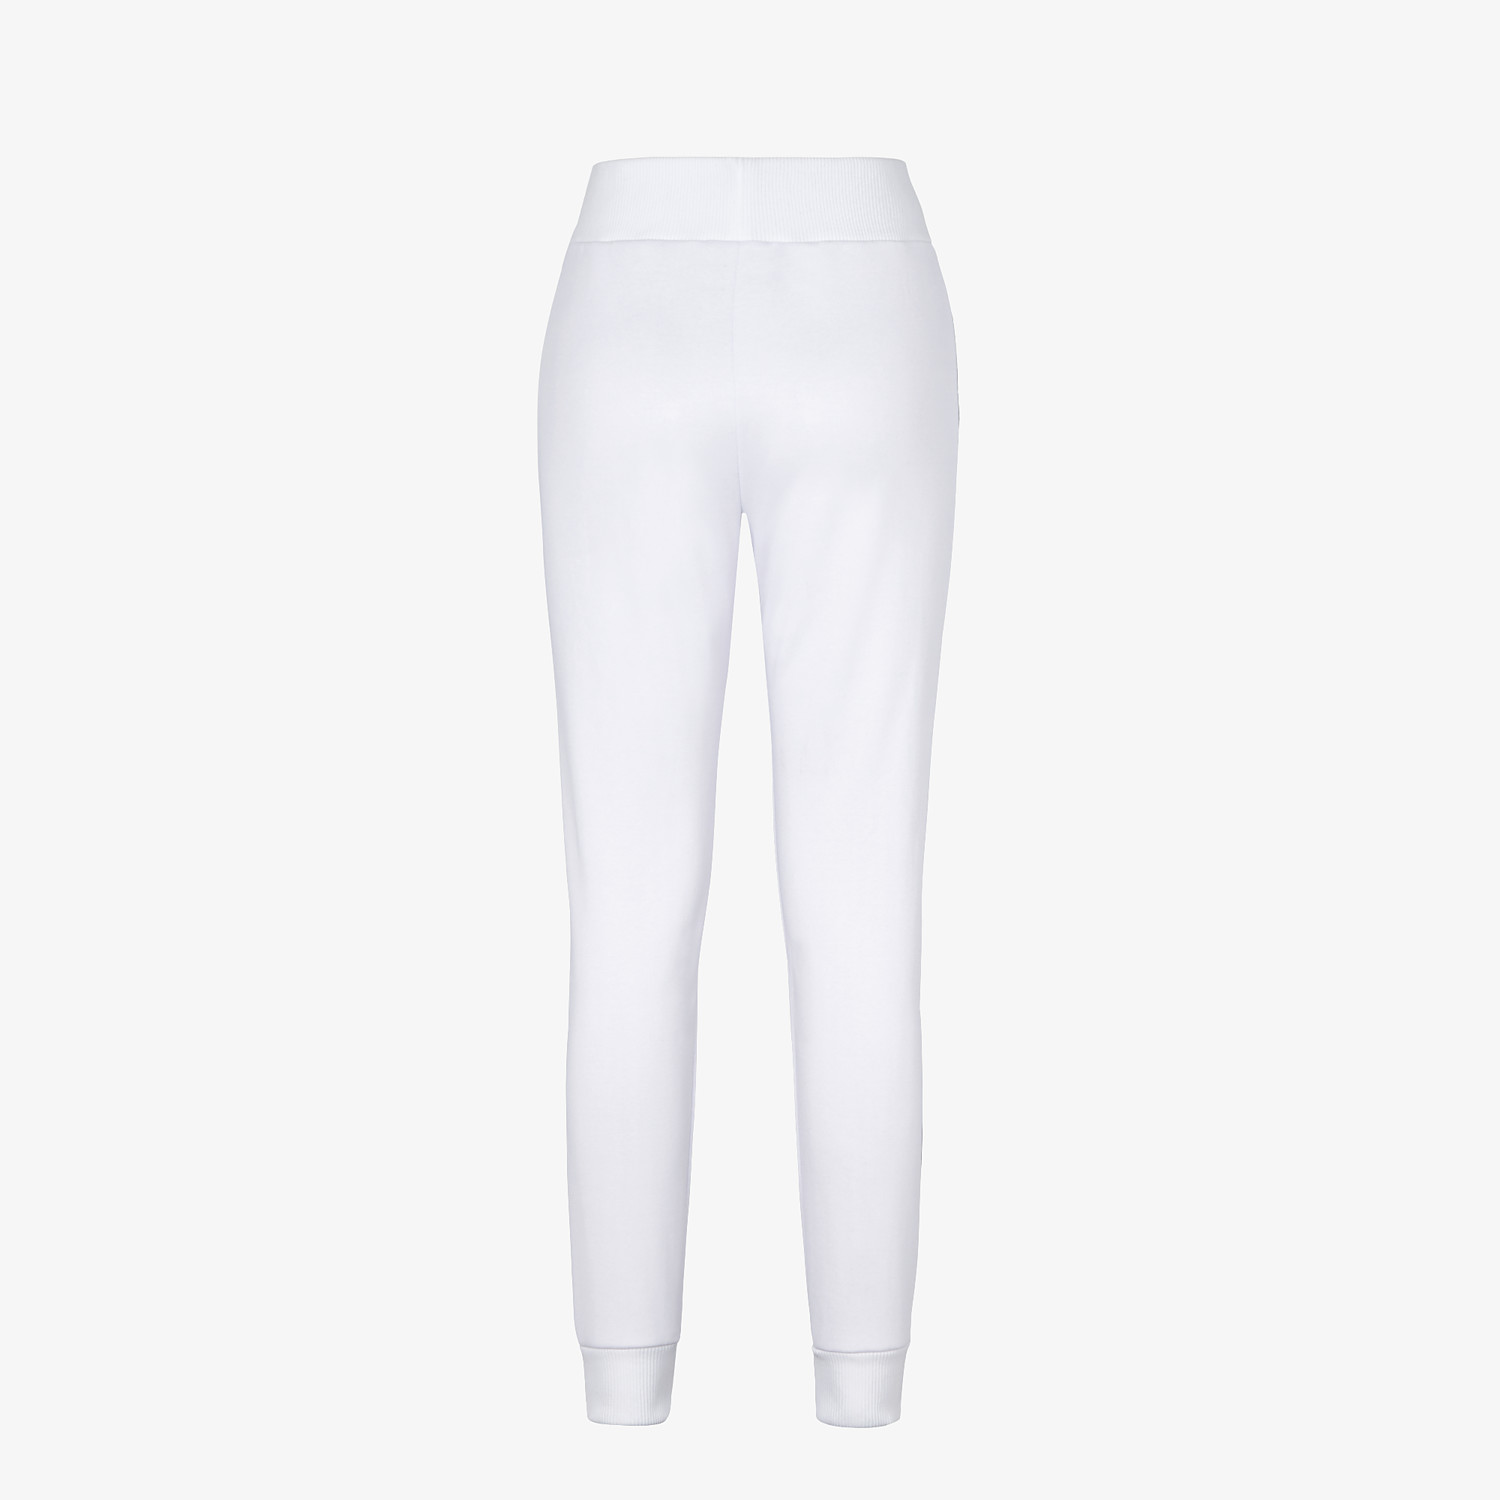 FENDI TROUSERS - White jersey jogging trousers - view 2 detail